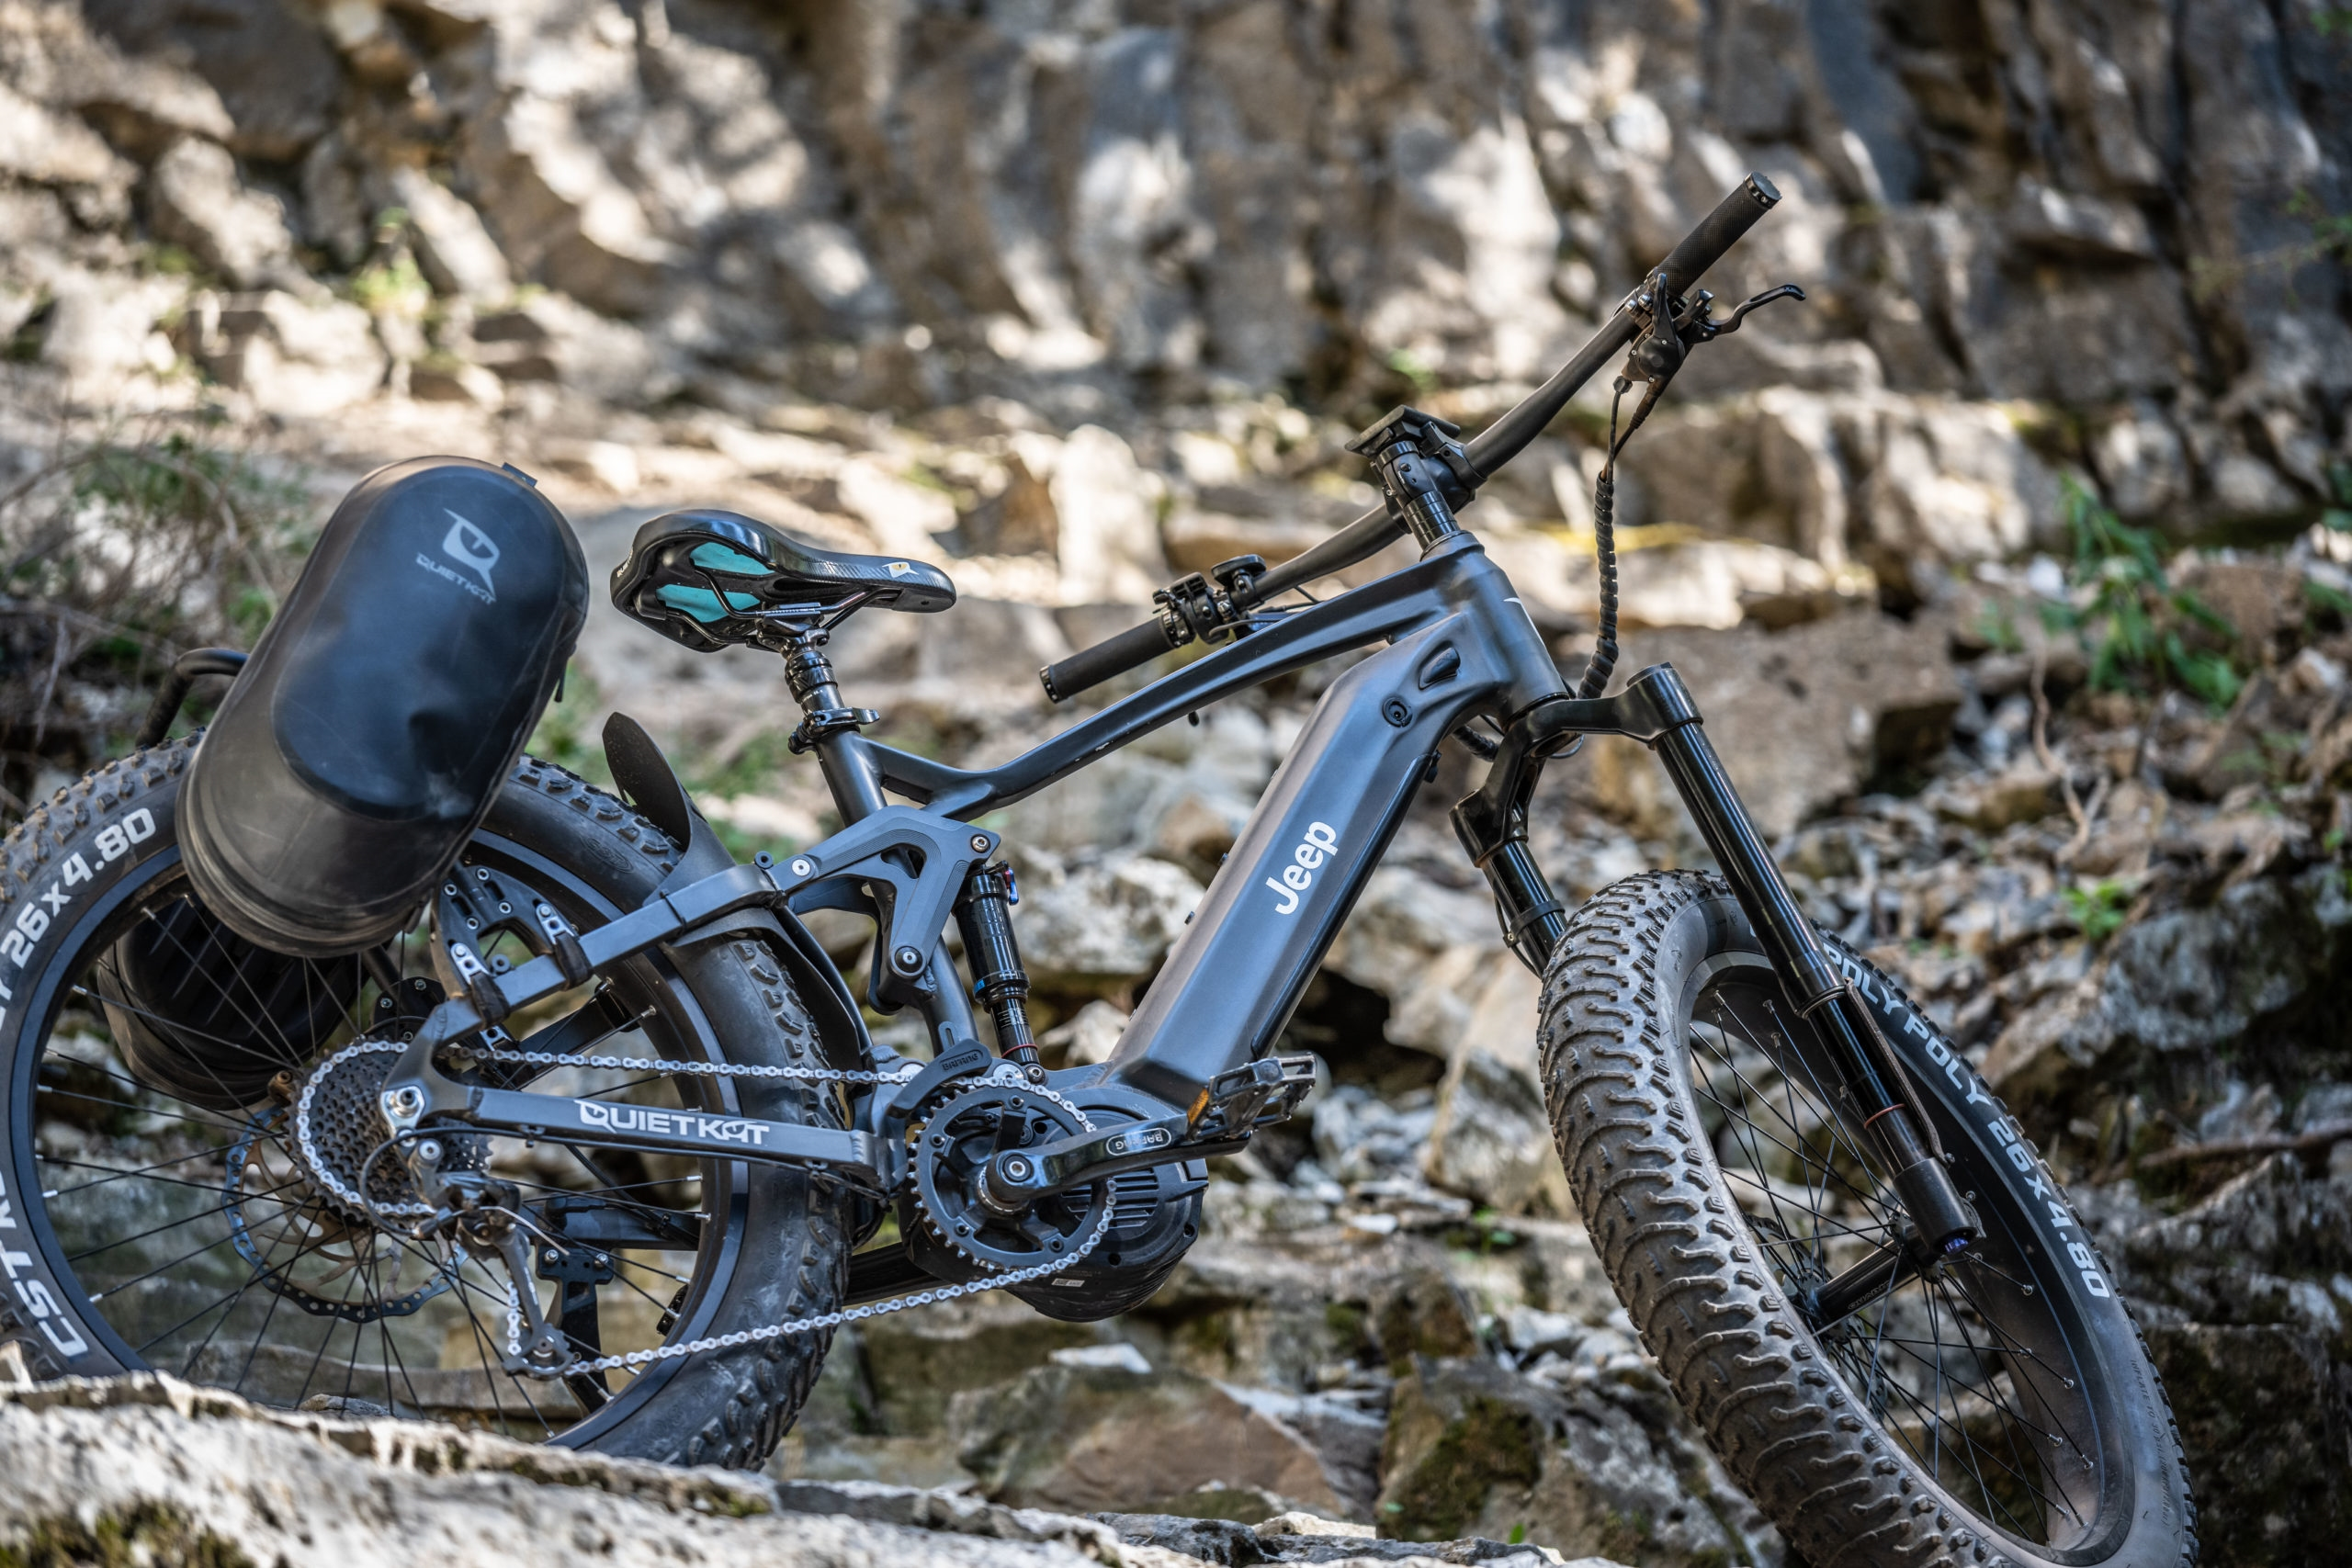 Jeep's monster off-road e-bike starts shipping in early September | DeviceDaily.com